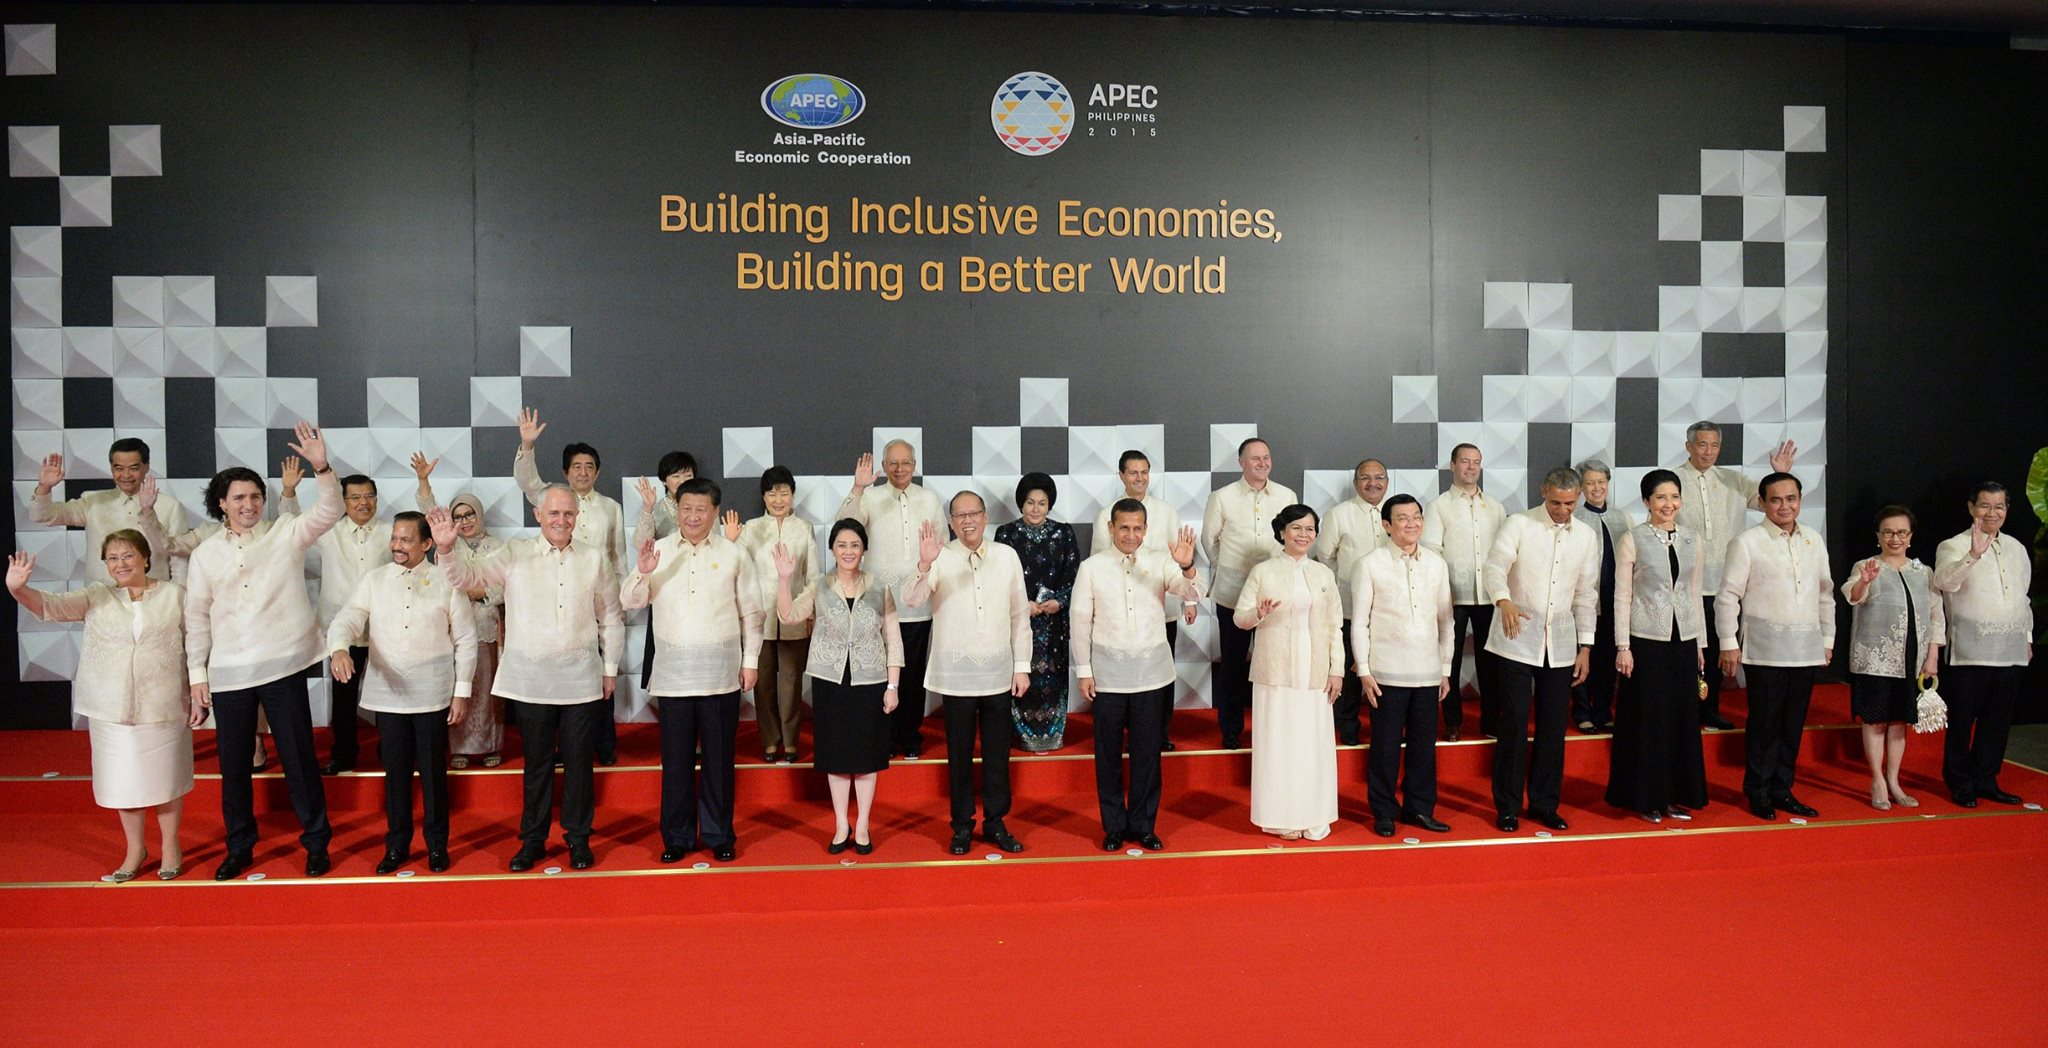 Image of Barong for the APEC Delegates is a Philippine-Made Pineapple Fibers of Ilonggo